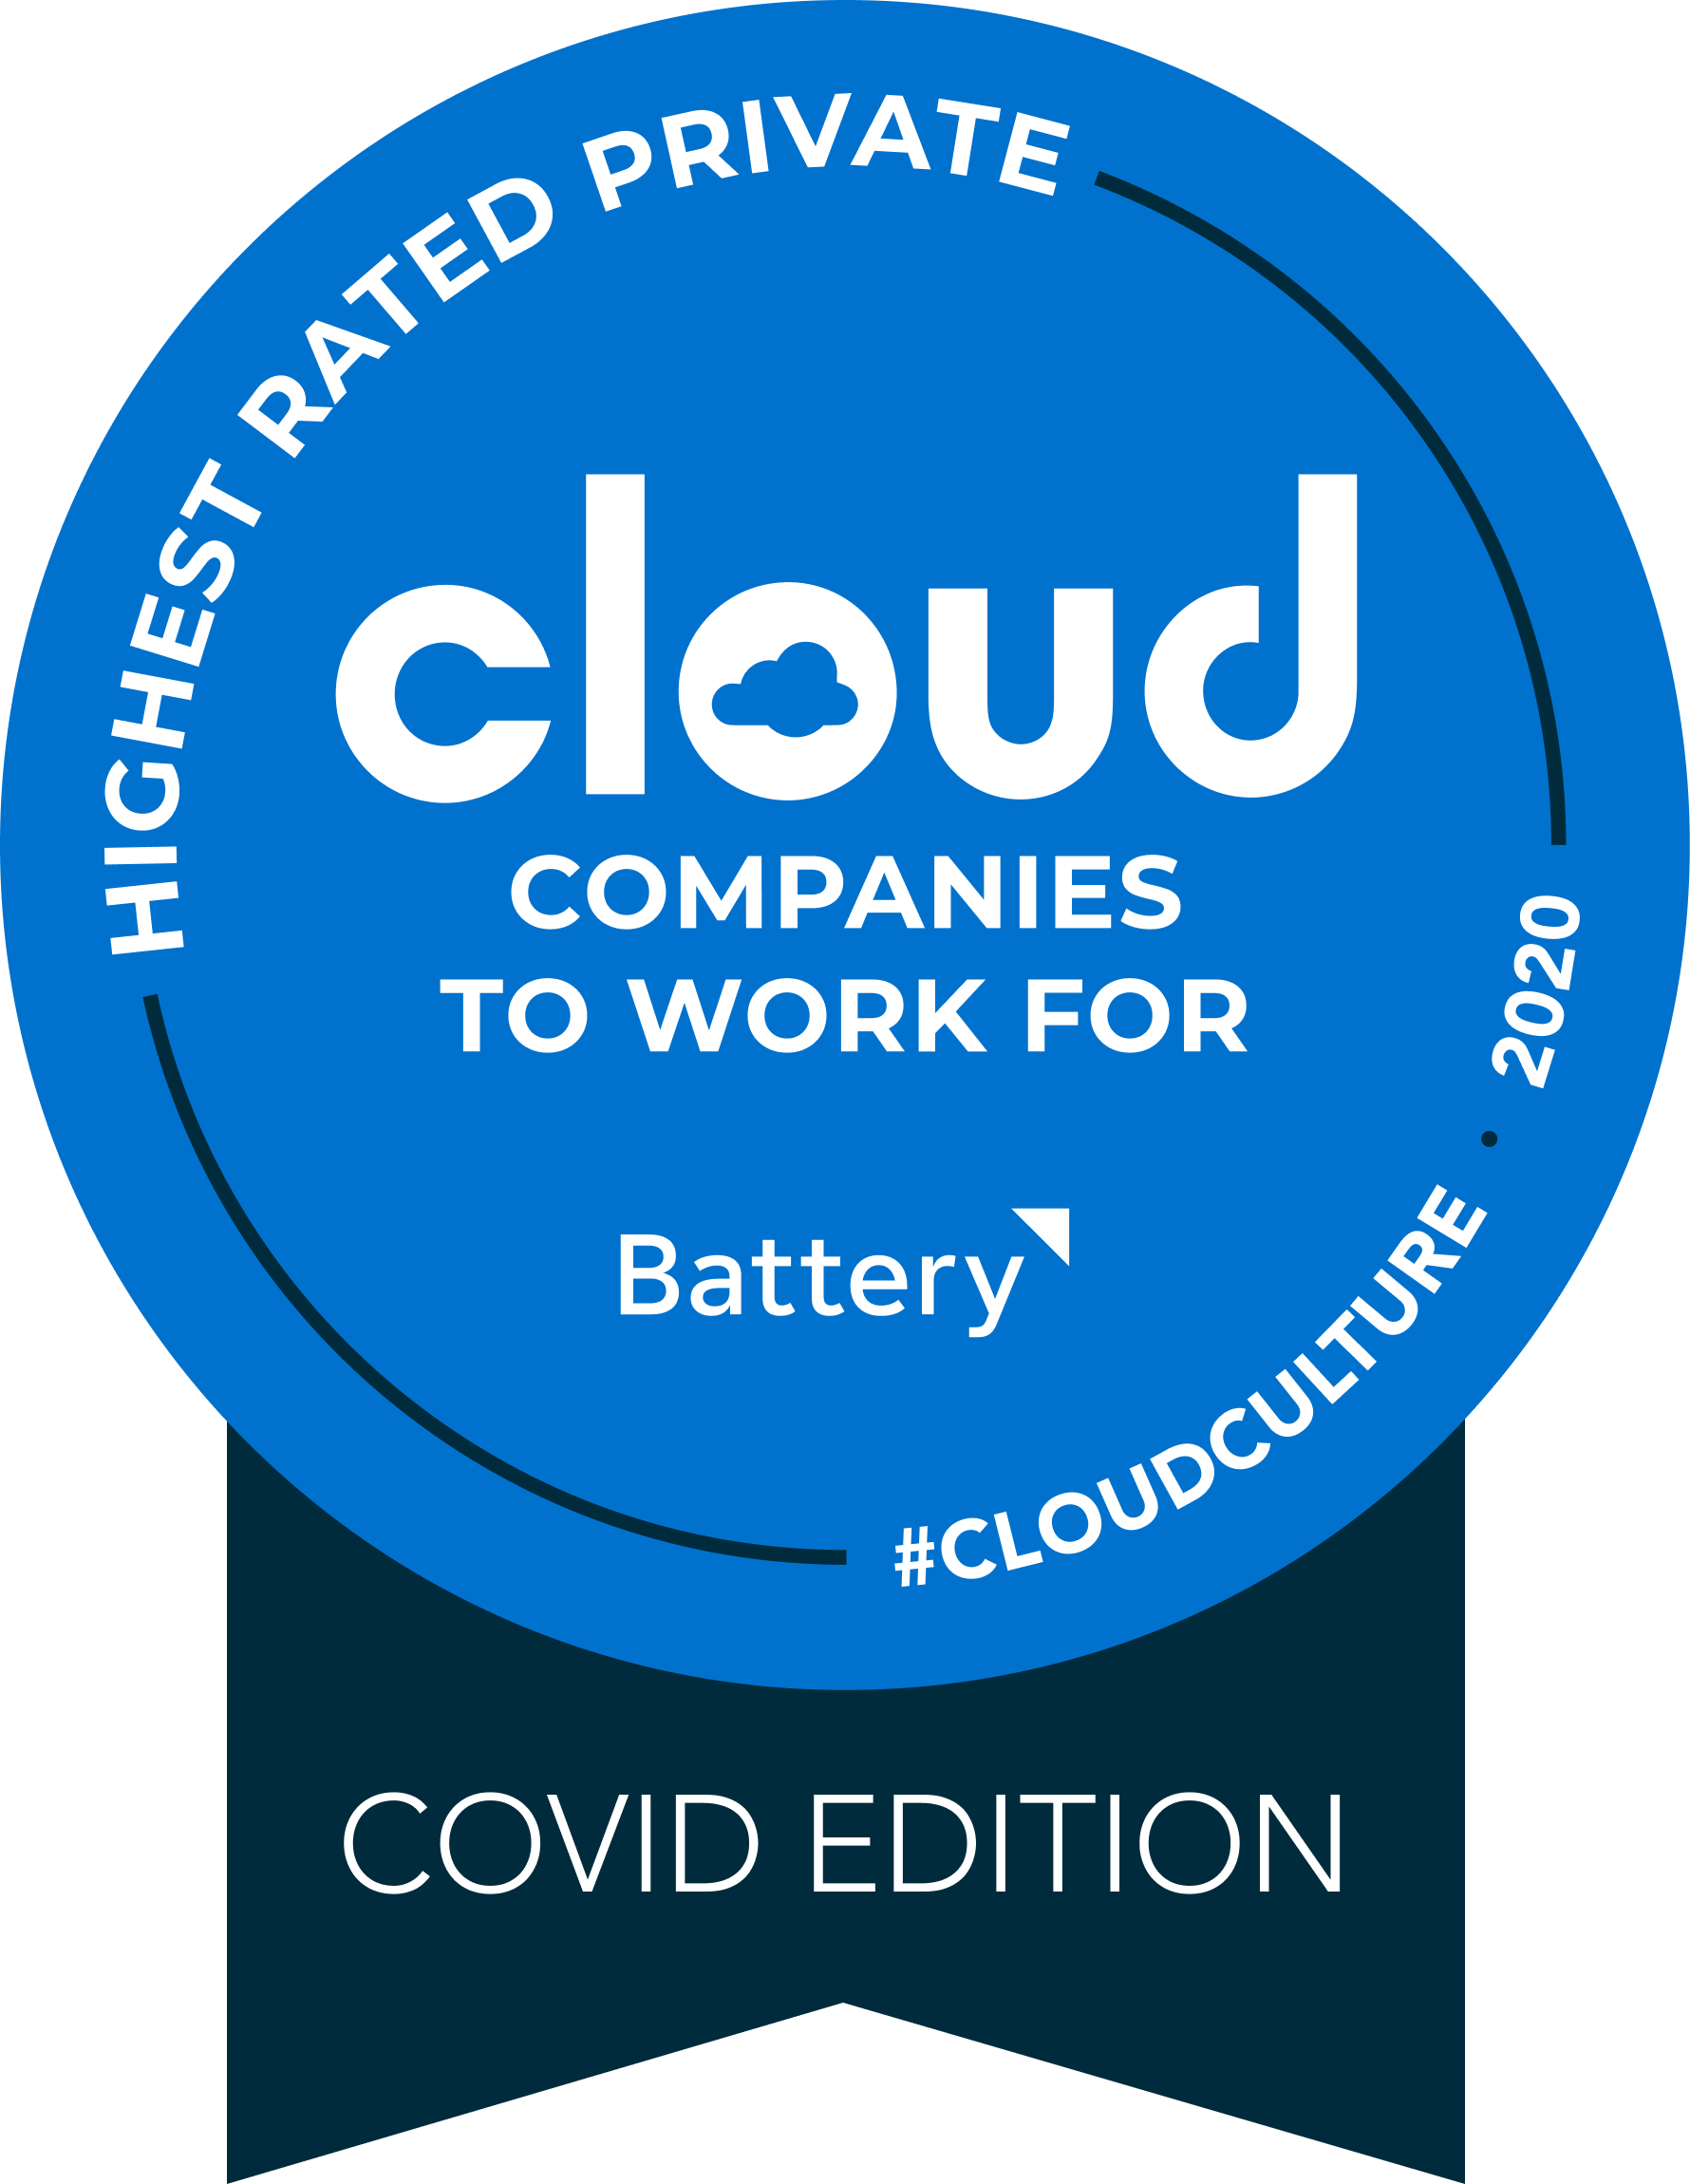 Mavenlink Named One Of 25 Highest Rated Private Cloud Computing Companies To Work For During The Covid Crisis